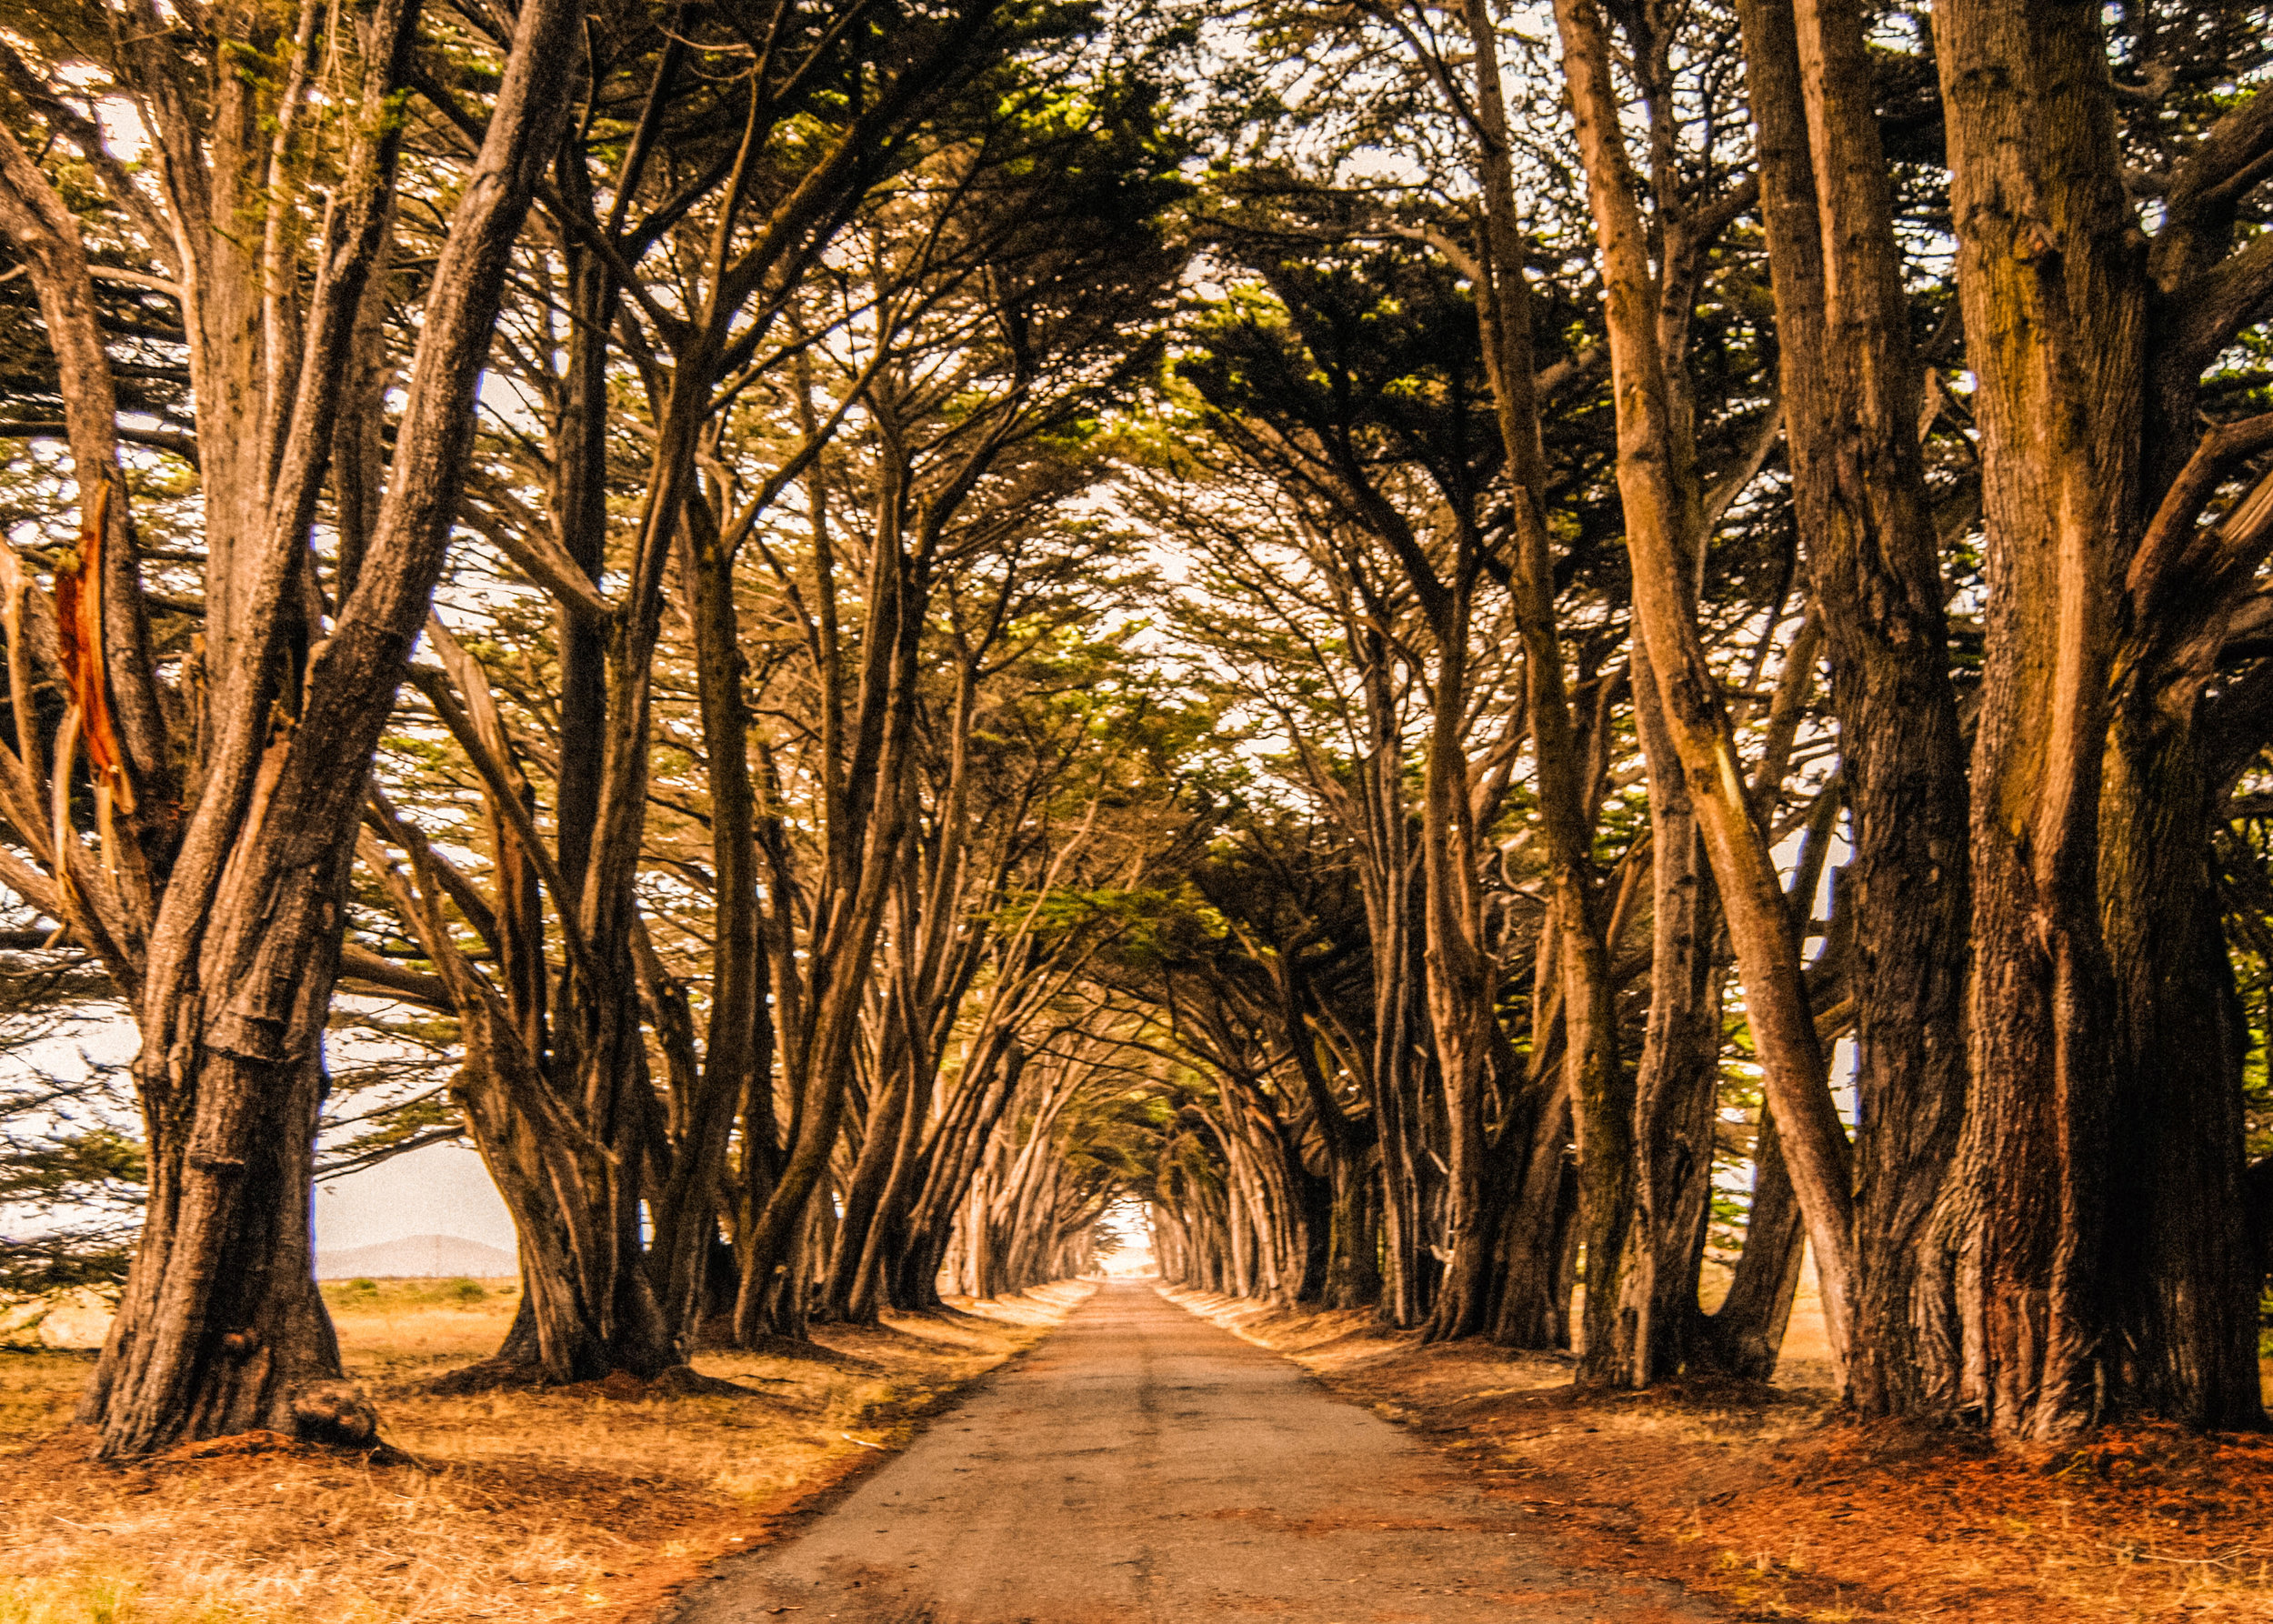 PointReyes_TreeTunnel.jpg